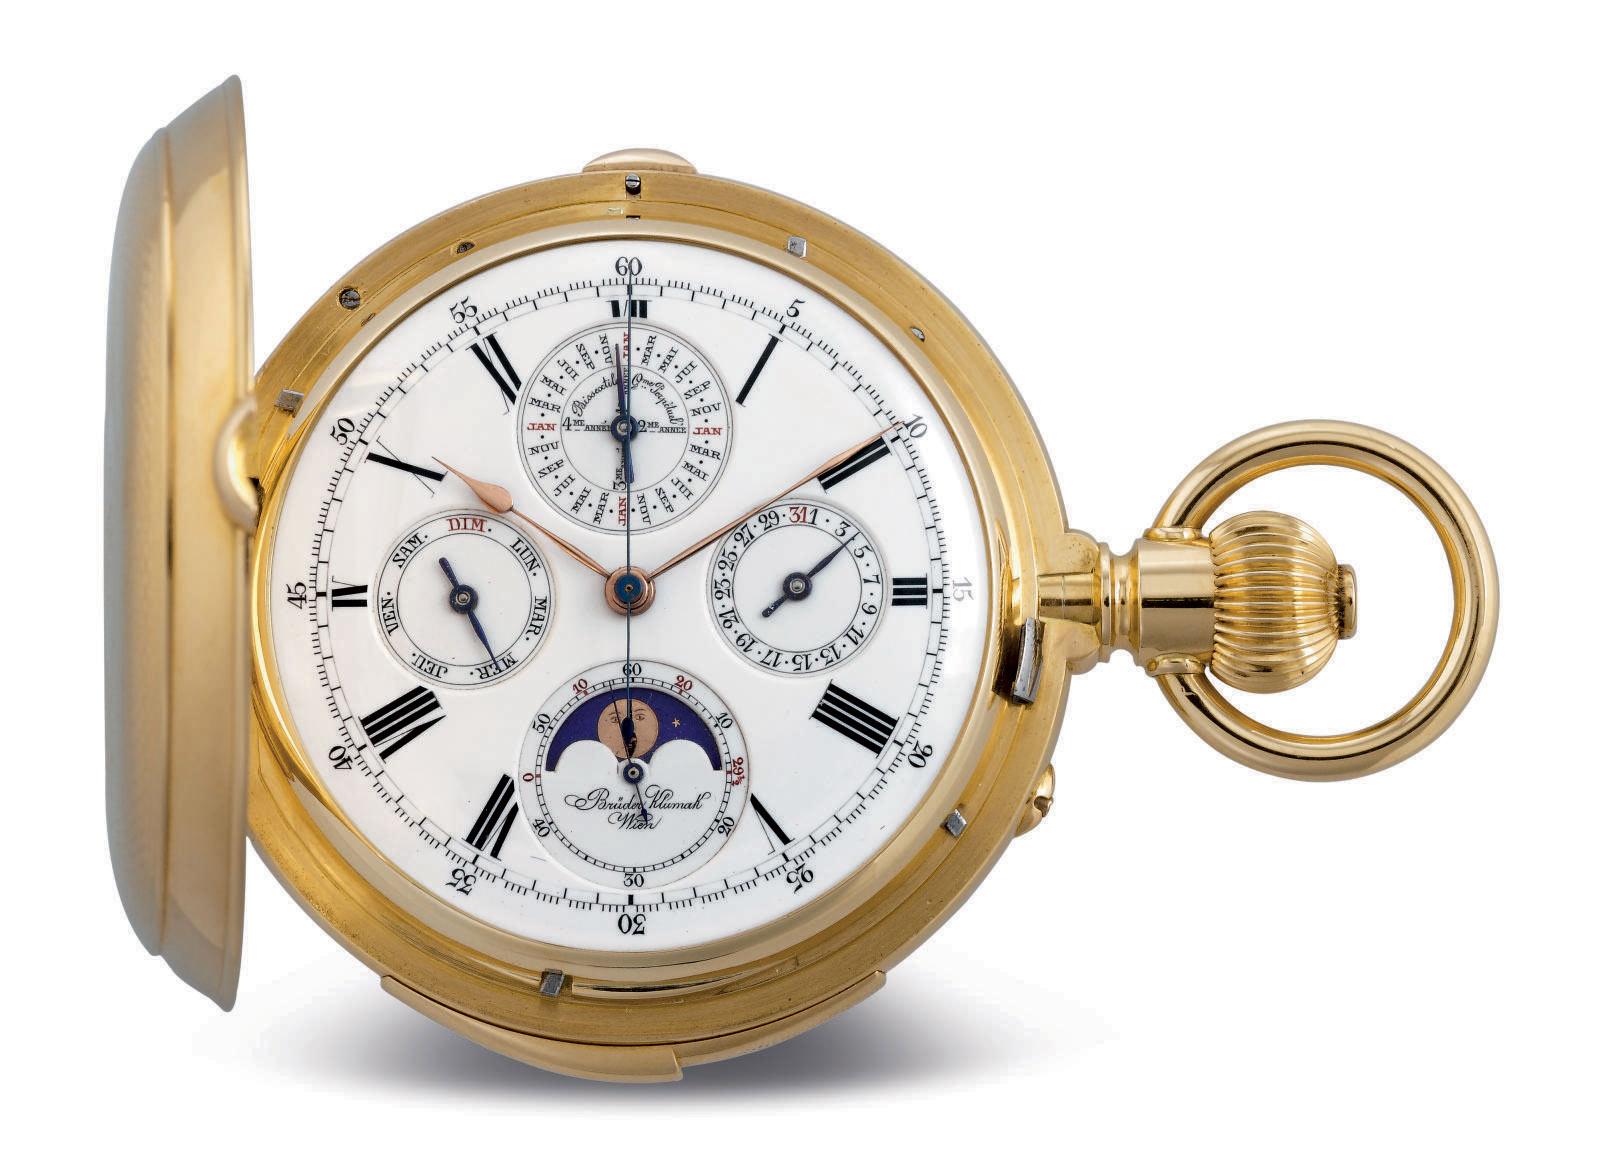 CHARLES FÉLICIEN TISSOT. A FINE AND RARE 18K GOLD HUNTER CASE MINUTE REPEATING PERPETUAL CALENDAR CHRONOGRAPH KEYLESS LEVER WATCH WITH MOON PHASES